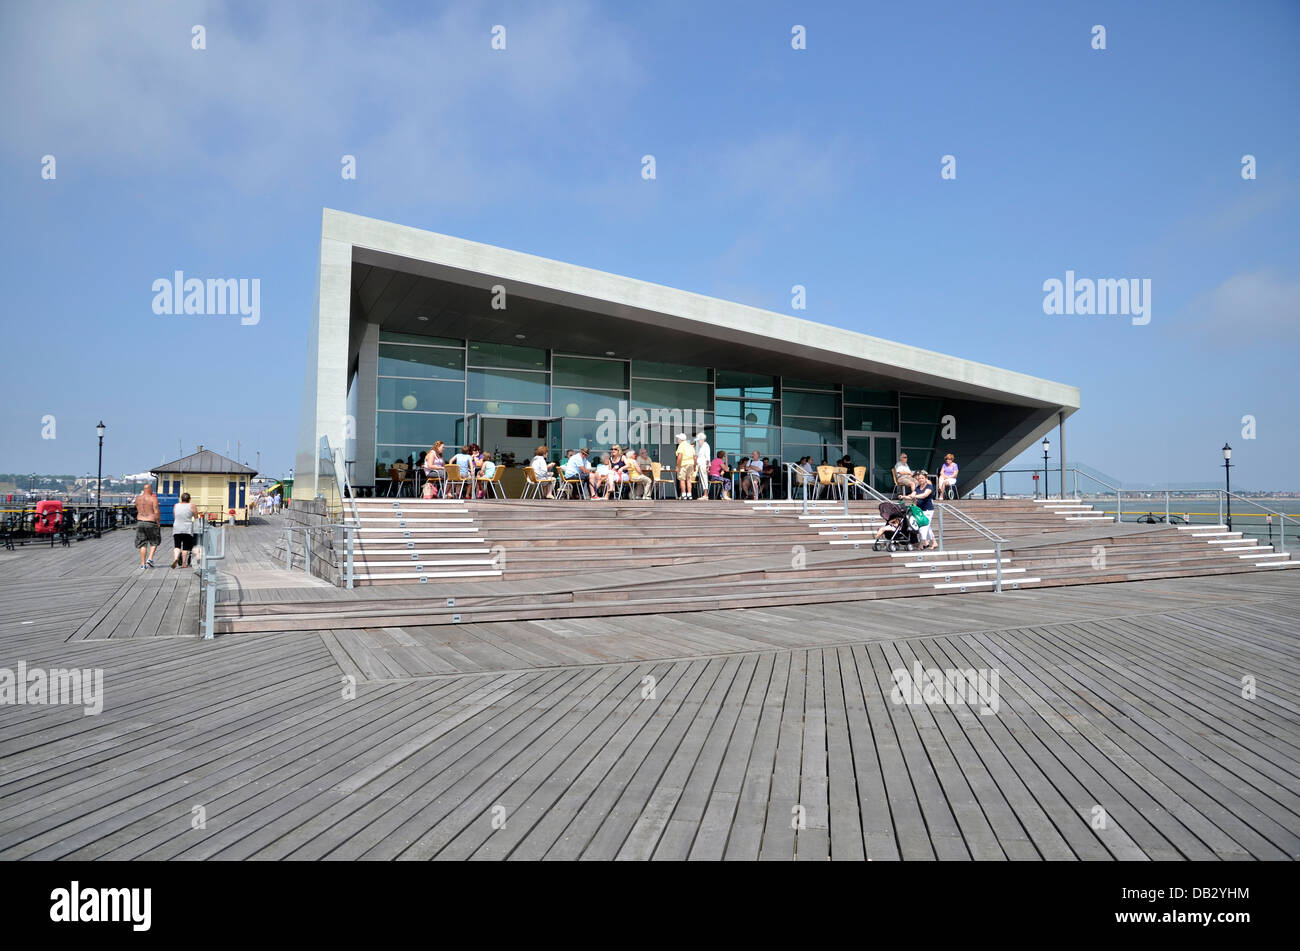 The Royal Pavilion at the end of Southend Pier - Stock Image